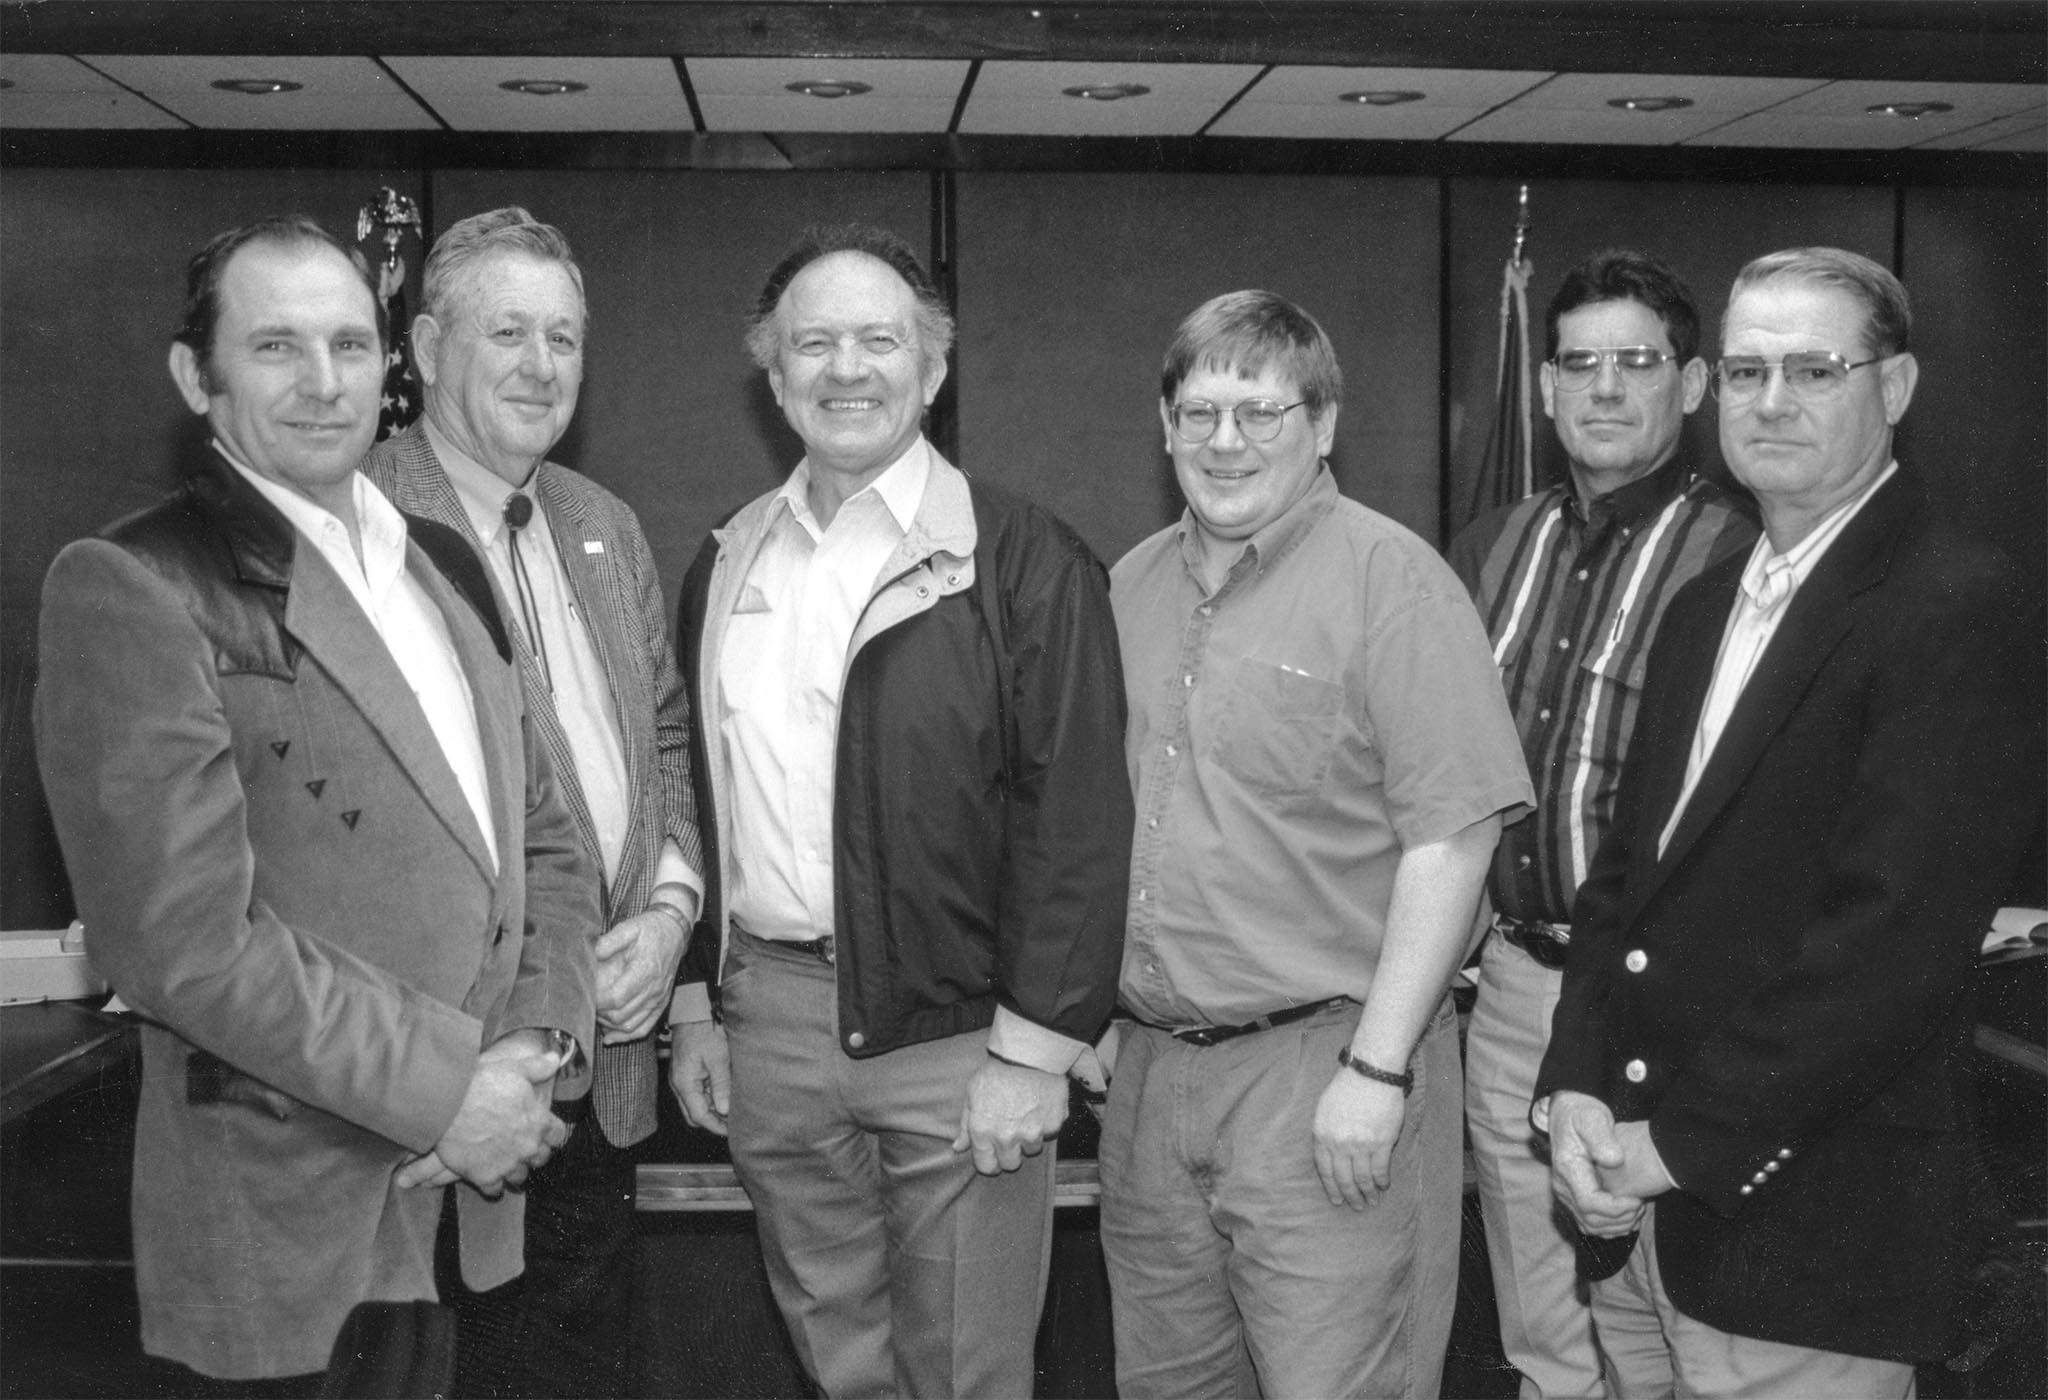 The chairmen of each commodity committee for 1996 gave reports detailing their activities during the American Farm Bureau Federation commodity meeting to the OKFB Board. The six also presented opinions on how to more effectively involve county Farm Bureau members and leaders in the activities of their commodities. Pictured are (left to right) Gary Fisher of Cherokee County, Poultry Advisory Committee Chairman; Merle Atkins of Tillman County, Cotton Advisory Committee Chairman; Jimmy Kinder of Cotton County, Beef Advisory Committee Chairman; Rodd Moesel of Canadian County, Ag Nursery and Greenhouse Advisory Committee Chairman; James Covey of Custer County, Wheat Advisory Committee Chairman; and Doyle Wilson of Hughes County, Peanut Advisory Committee Chairman.